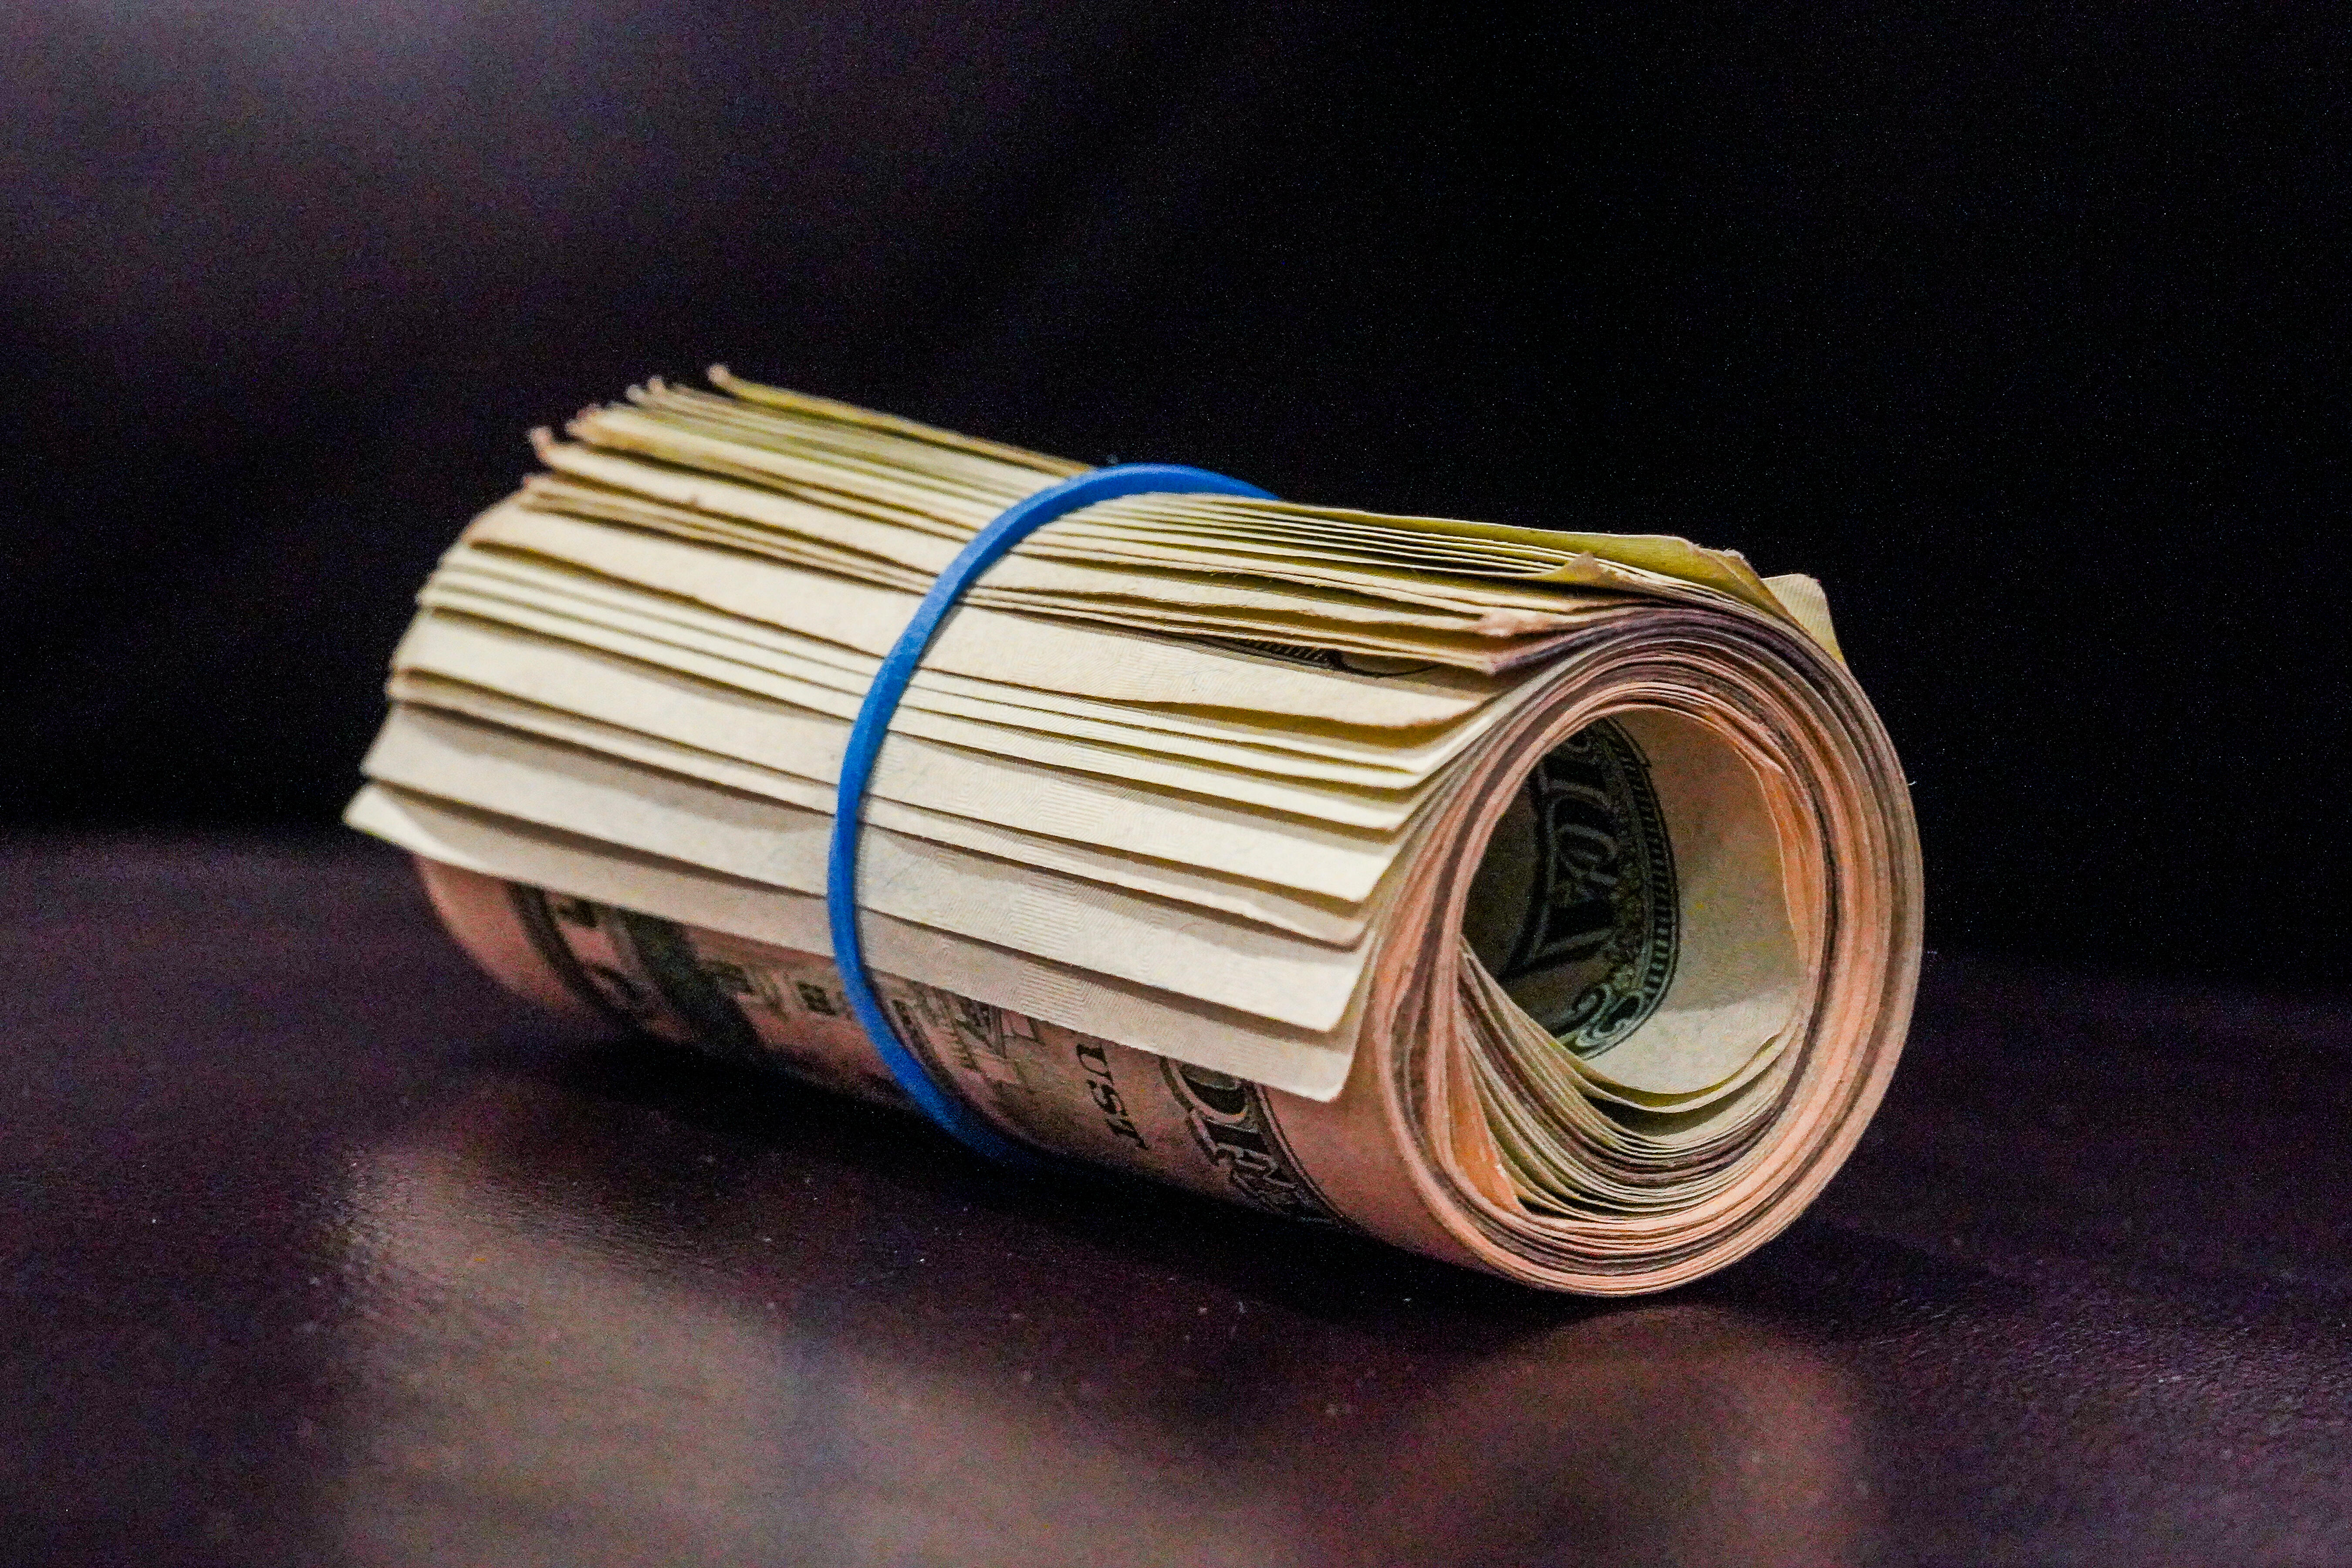 030-money-us-dollar-bills-roll-stack-cash